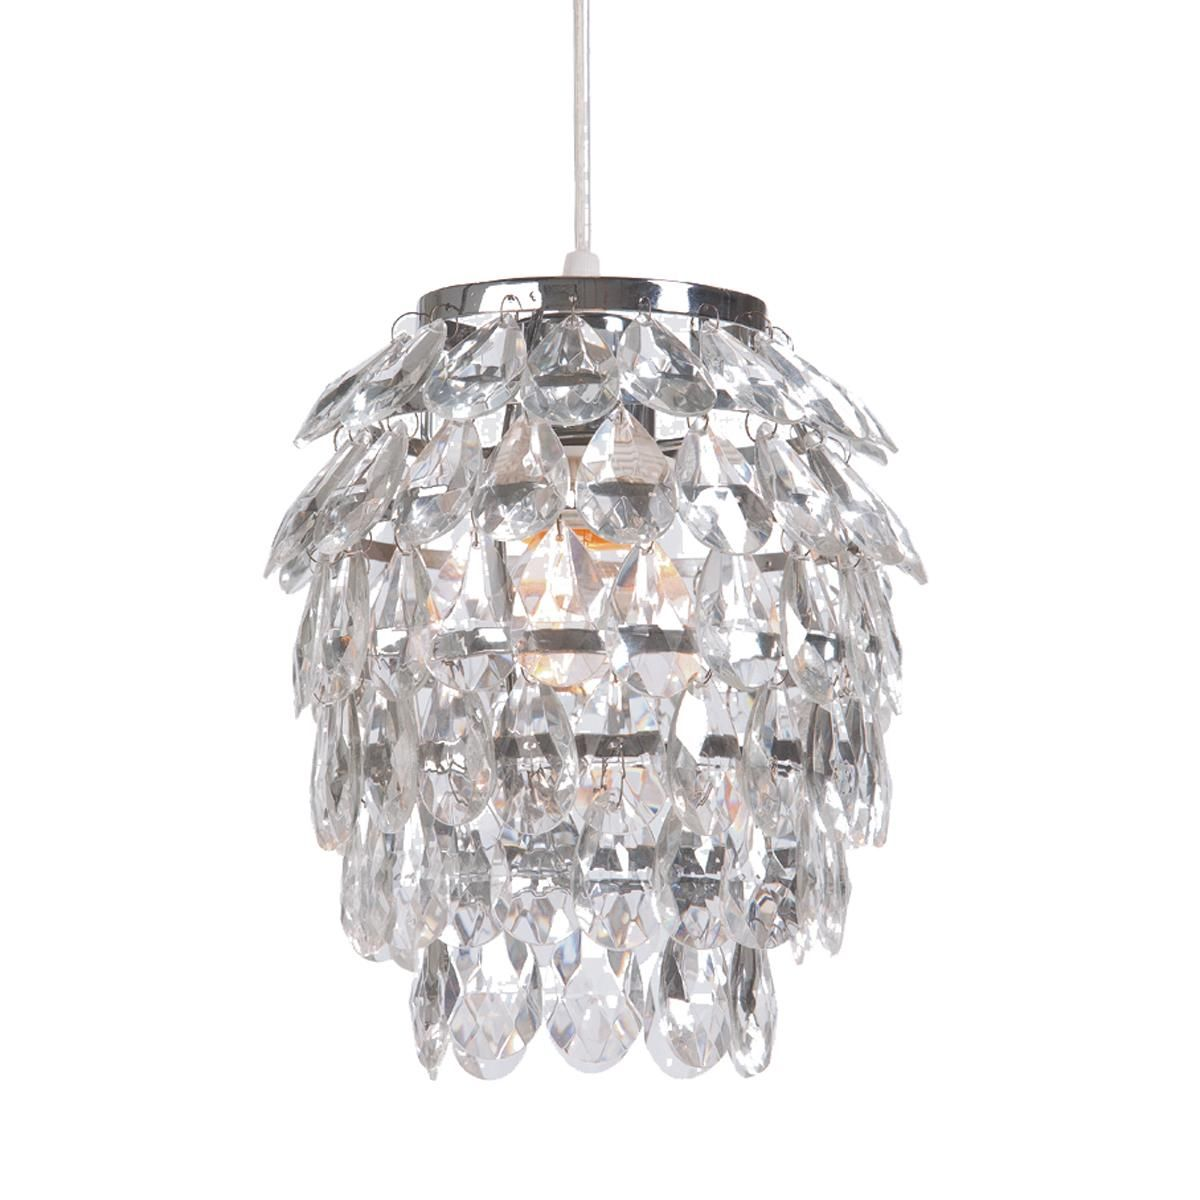 Crystal Curtain Mini Pendant Light Small Reno Refurb